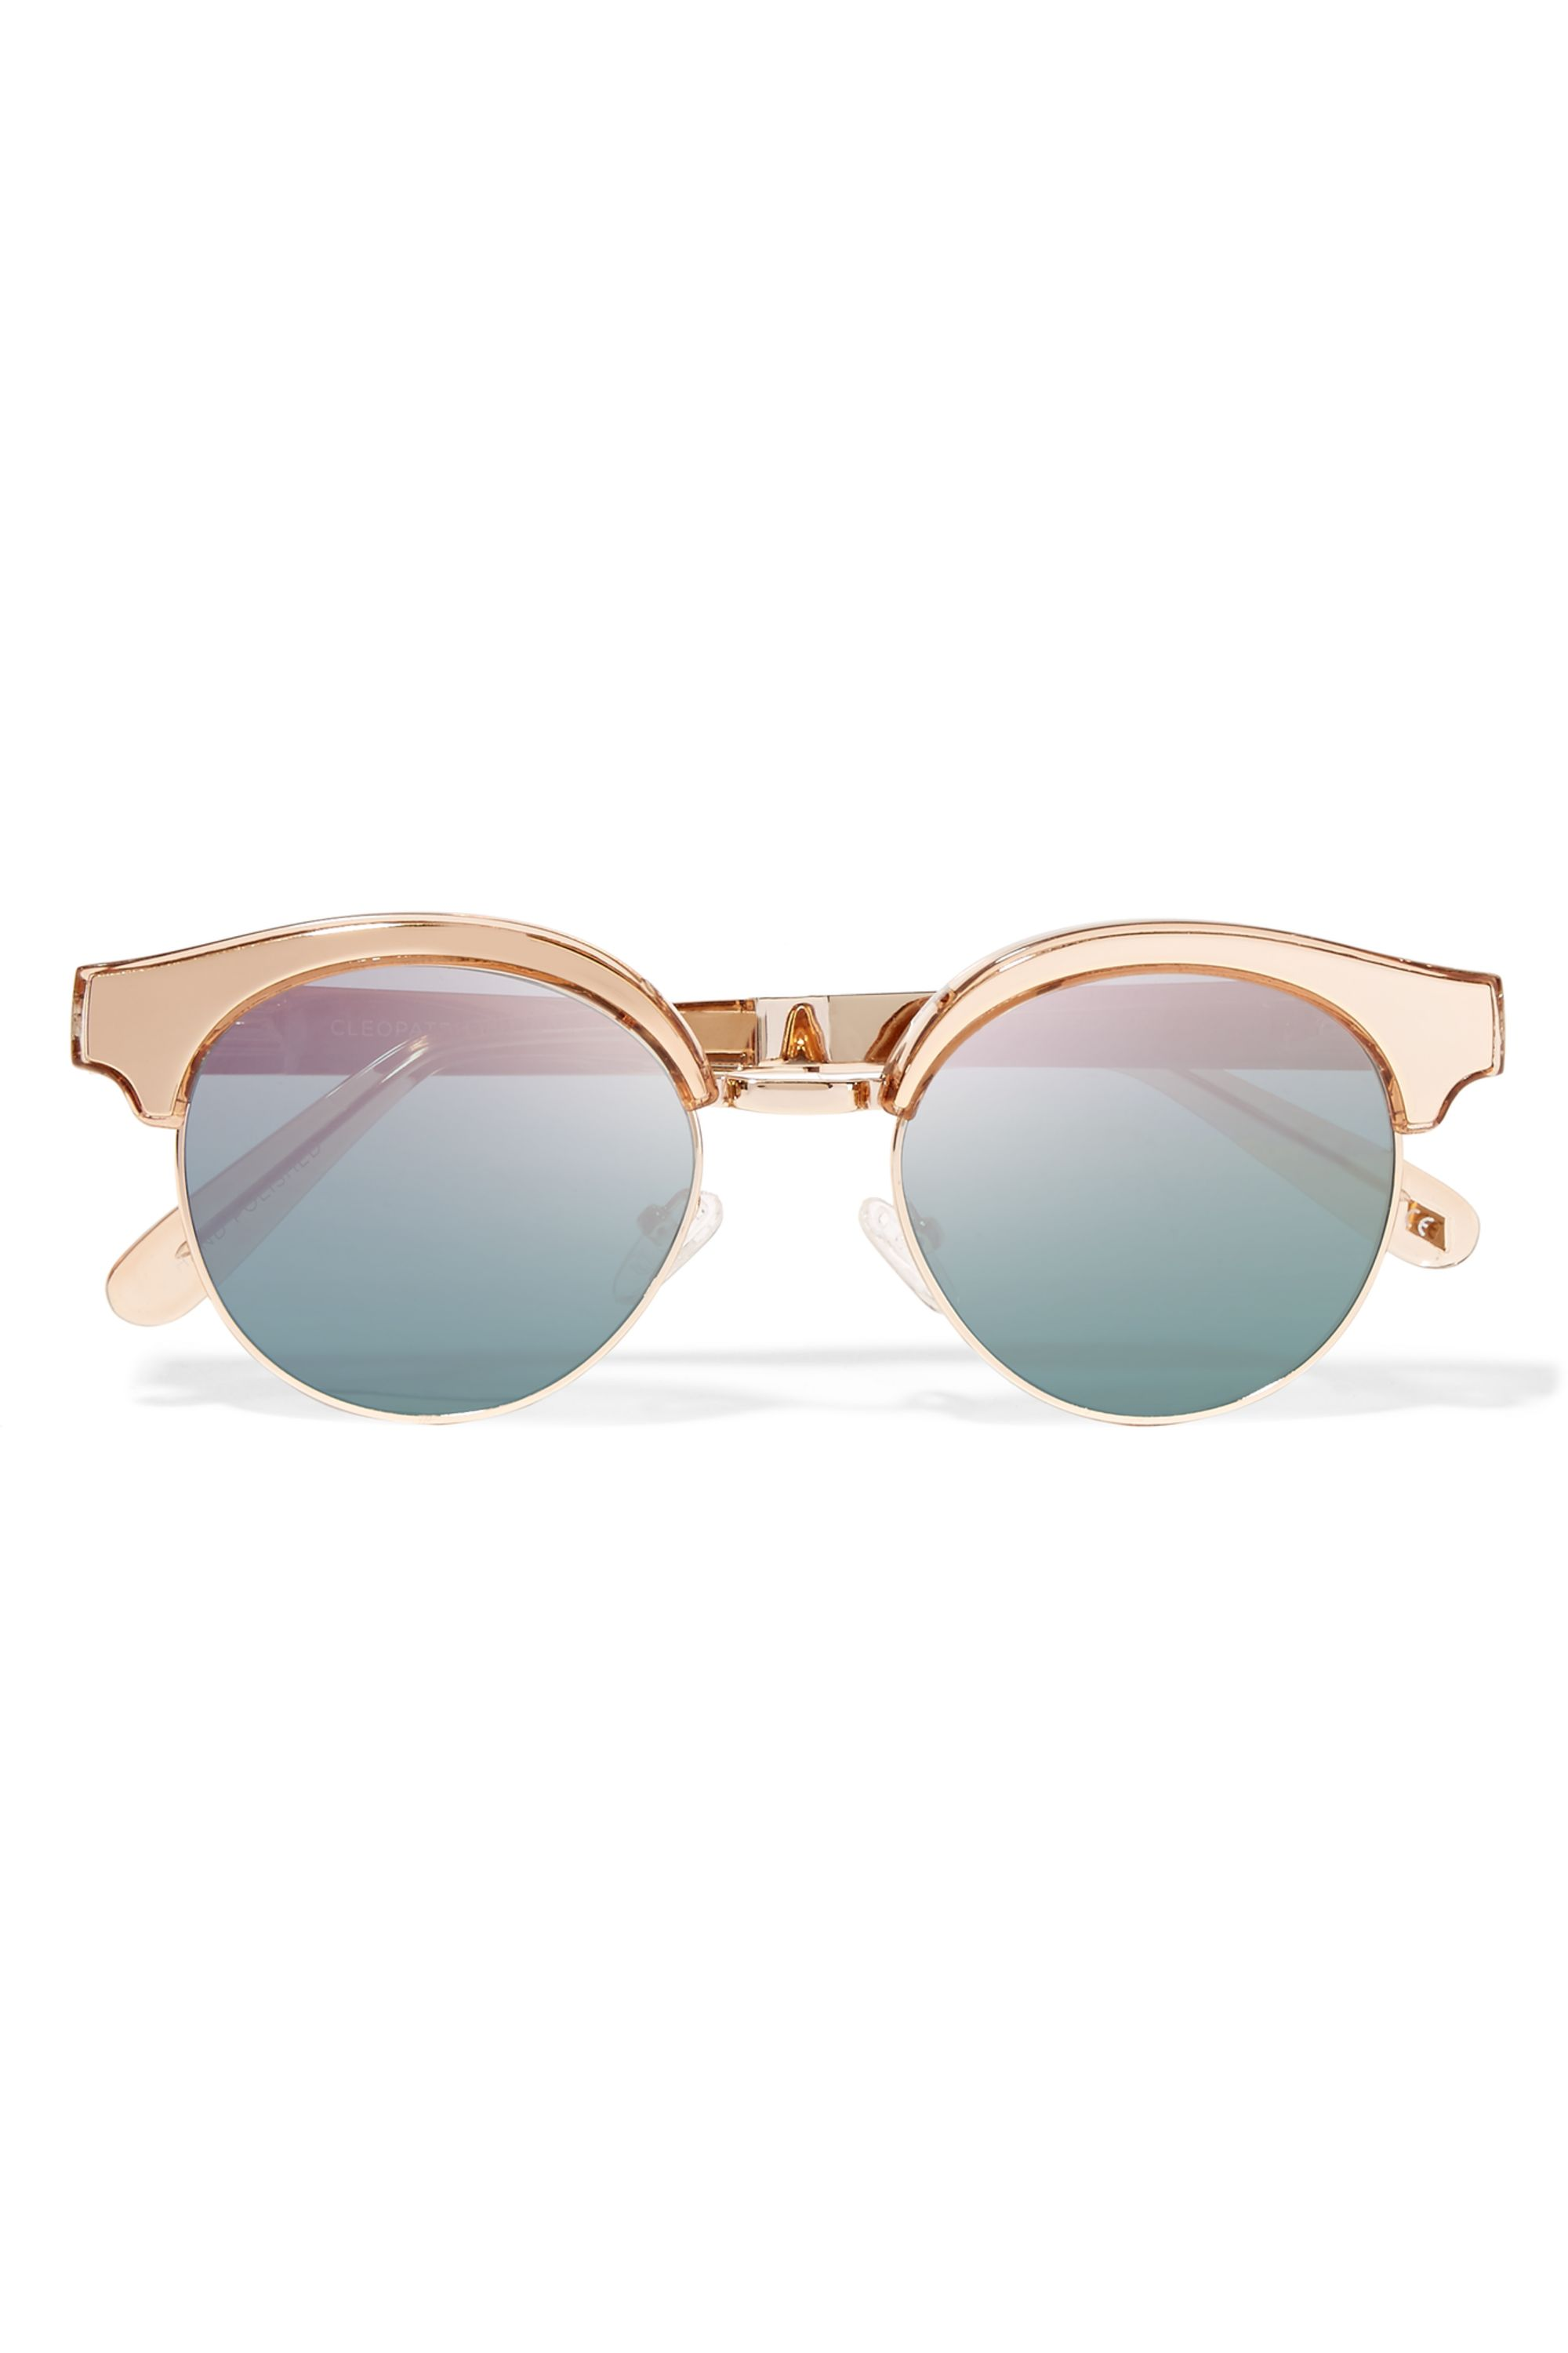 Le Specs Luxe Cleopatra cat-eye metal mirrored sunglasses